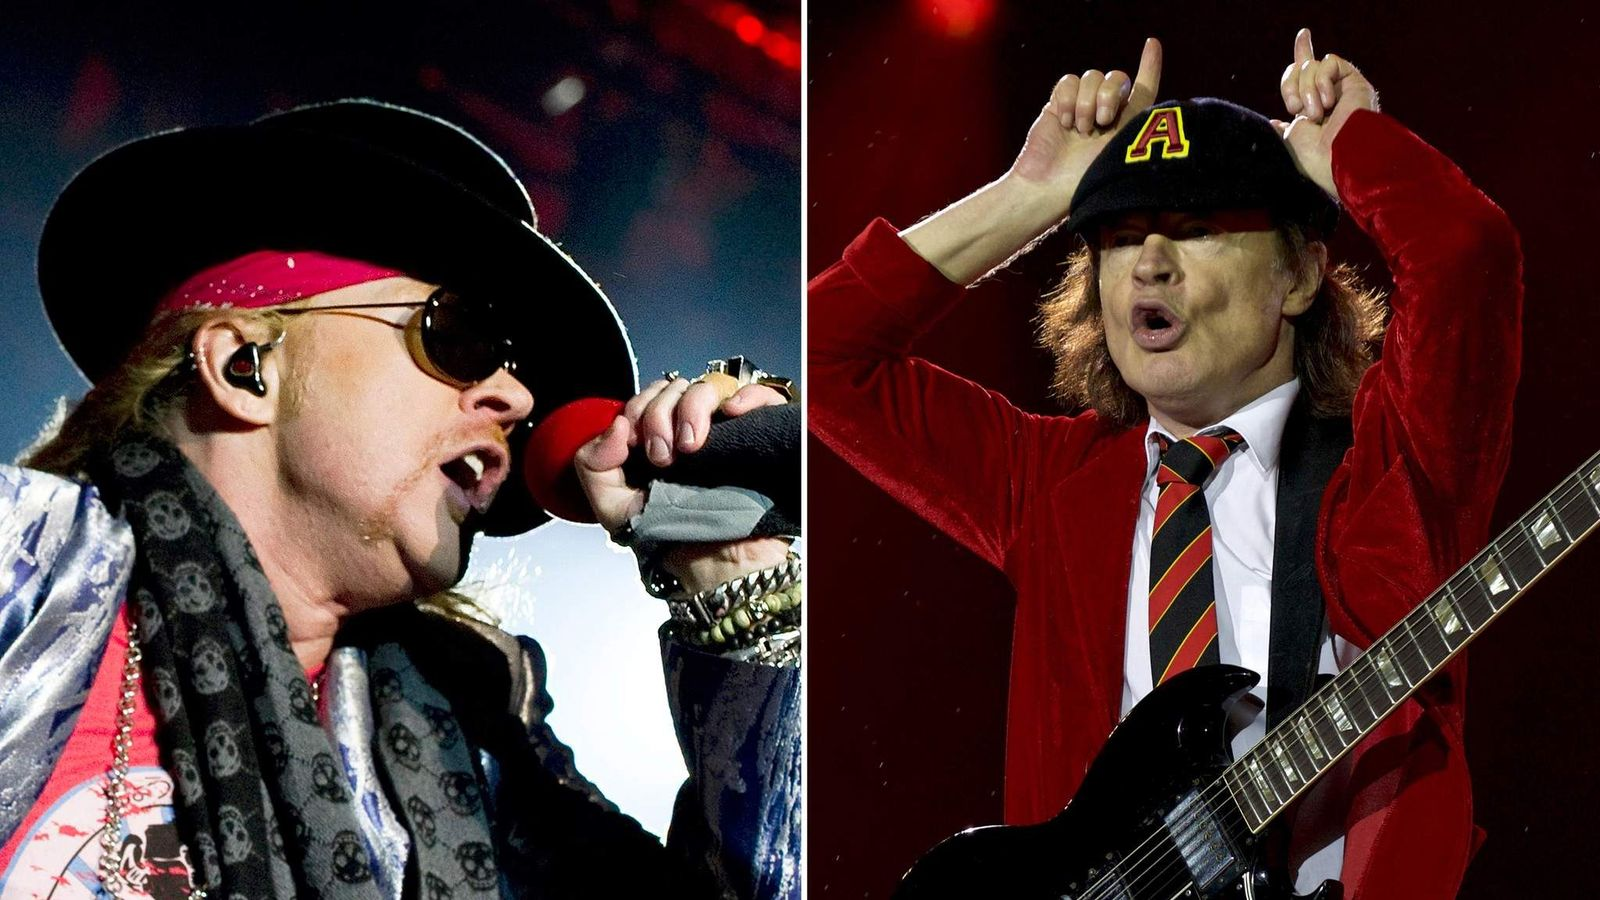 axl rose 39 will front ac dc 39 for tour dates ents arts news sky news. Black Bedroom Furniture Sets. Home Design Ideas